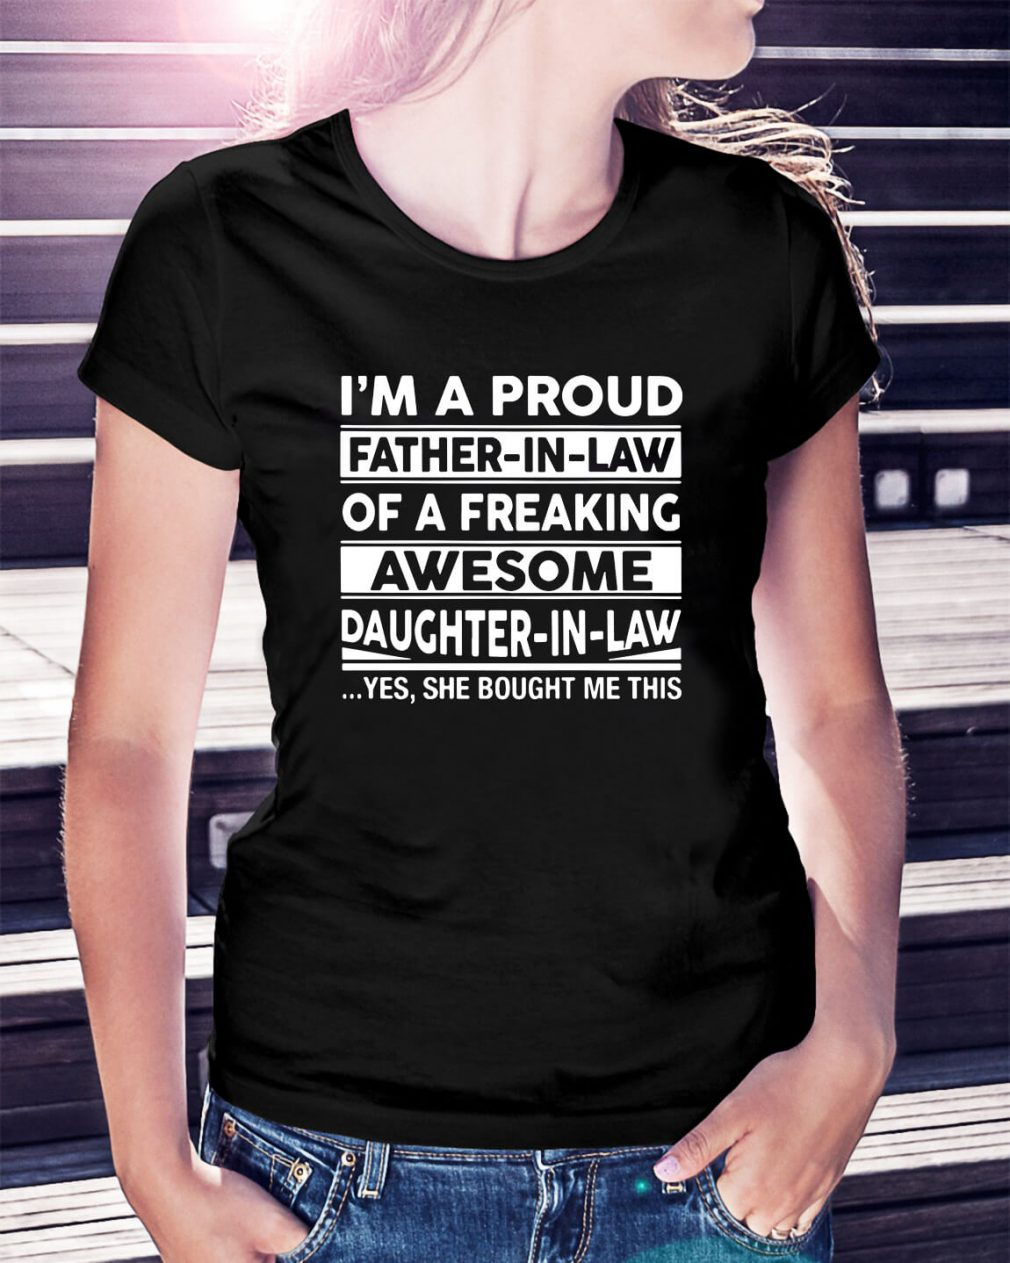 I'm a proud father-in-law of a freaking awesome daughter-in-law Ladies Tee